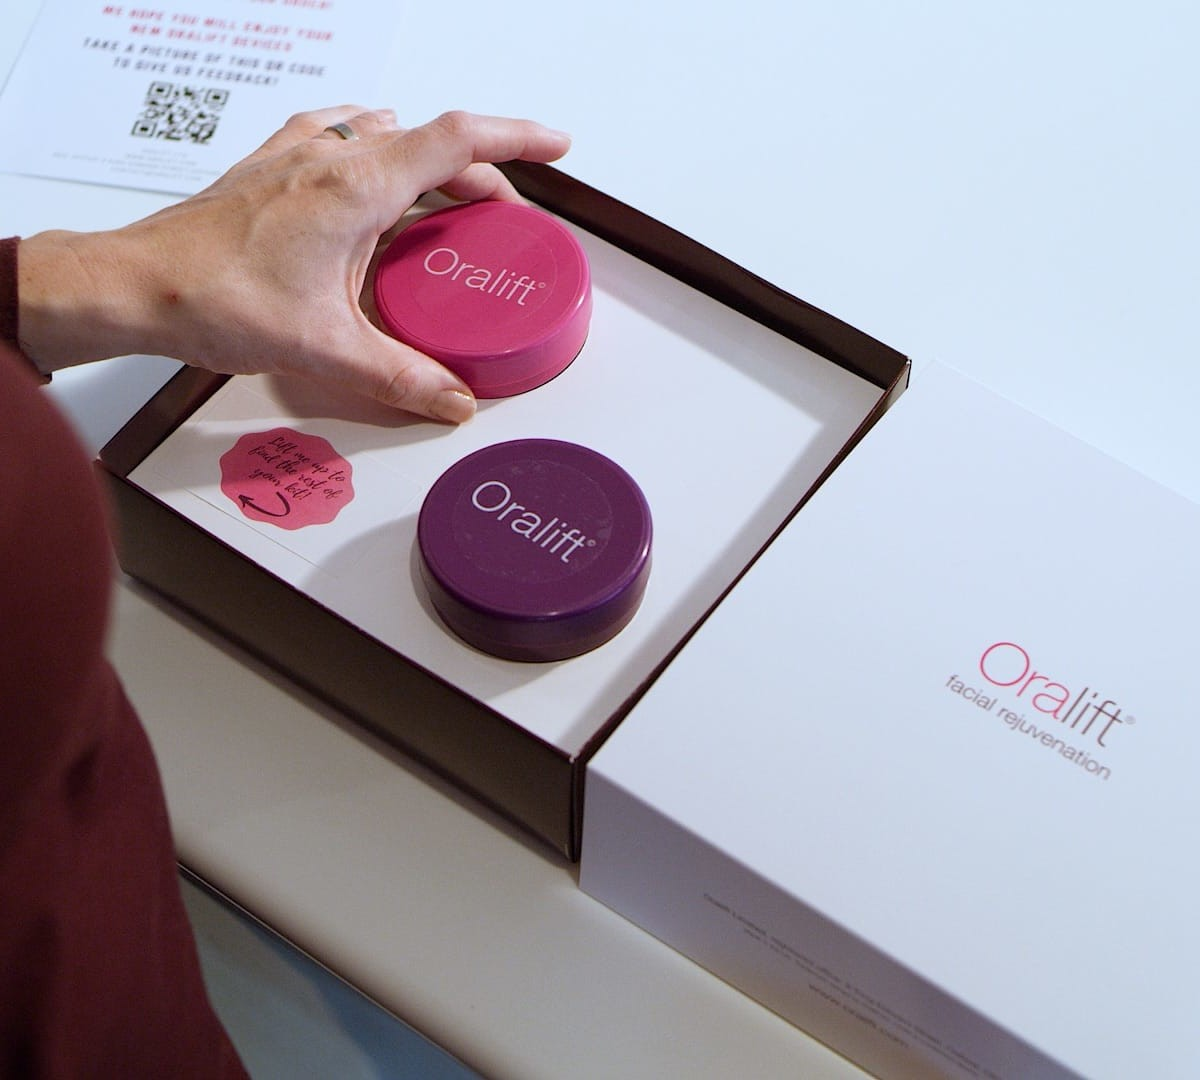 Oralift natural facelift device rejuvenates your face at home with the connected app